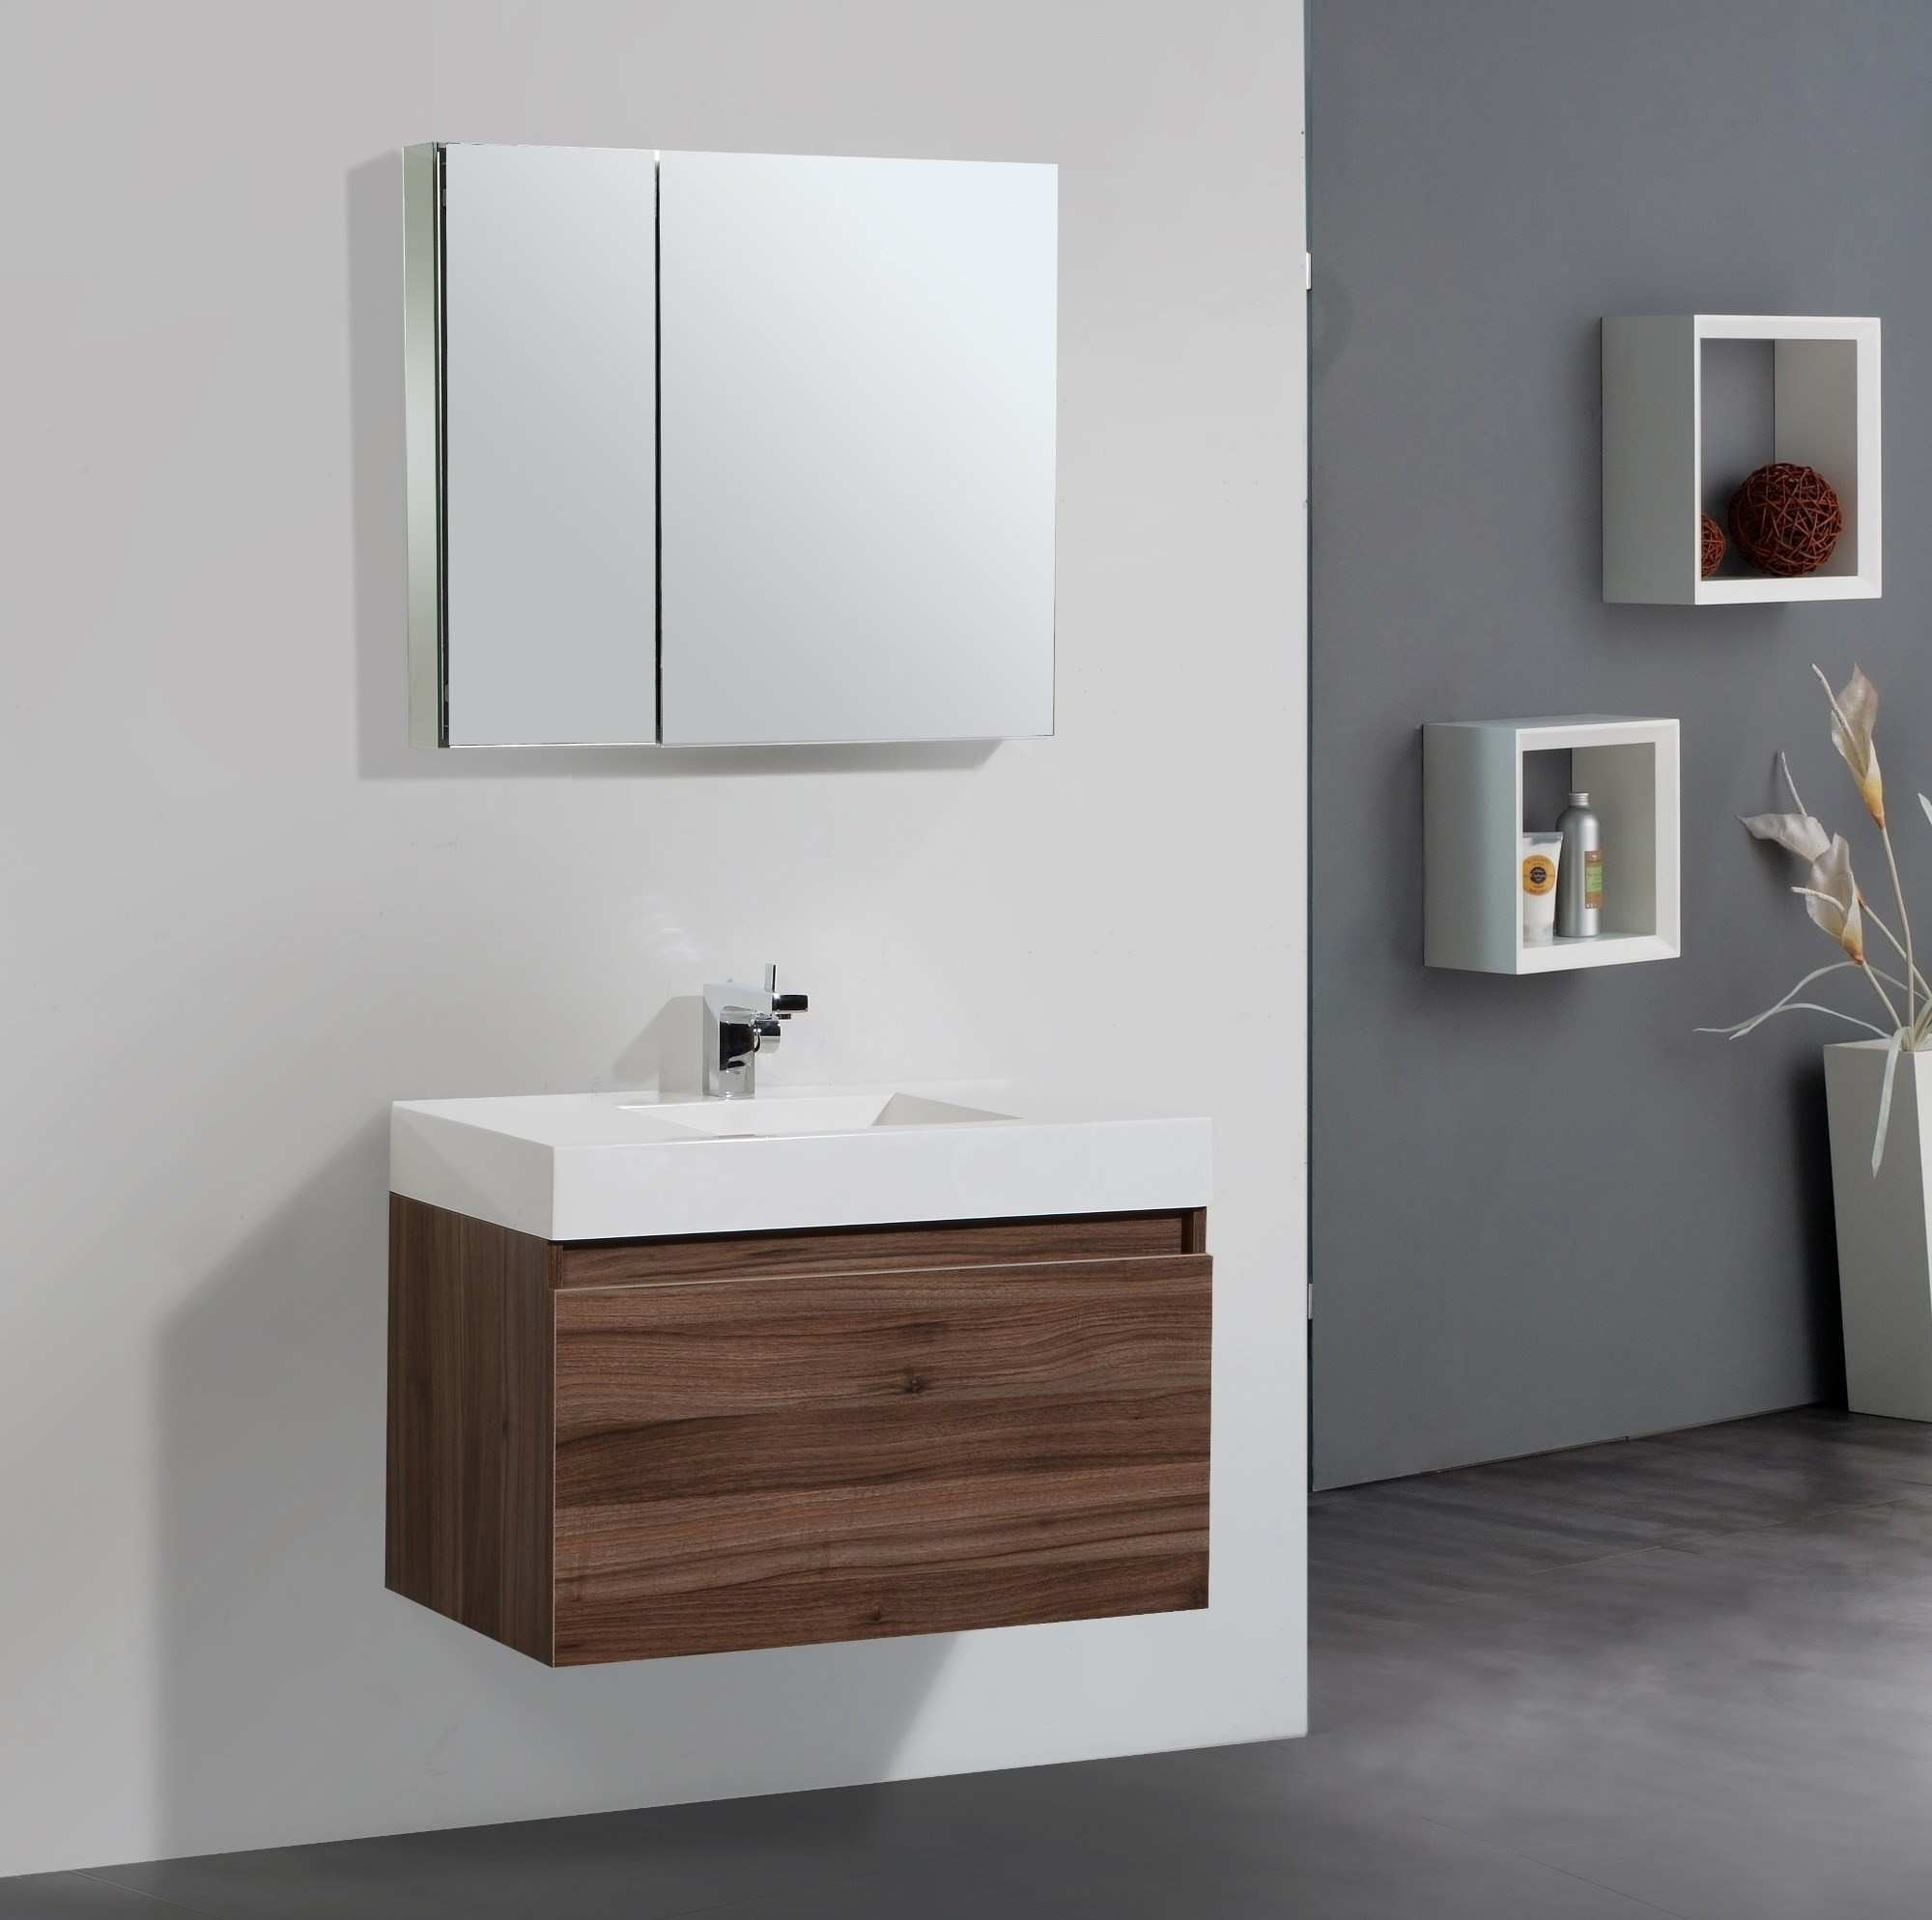 Free Download Image Awesome Oval Bathroom Mirrors 650646 Oval